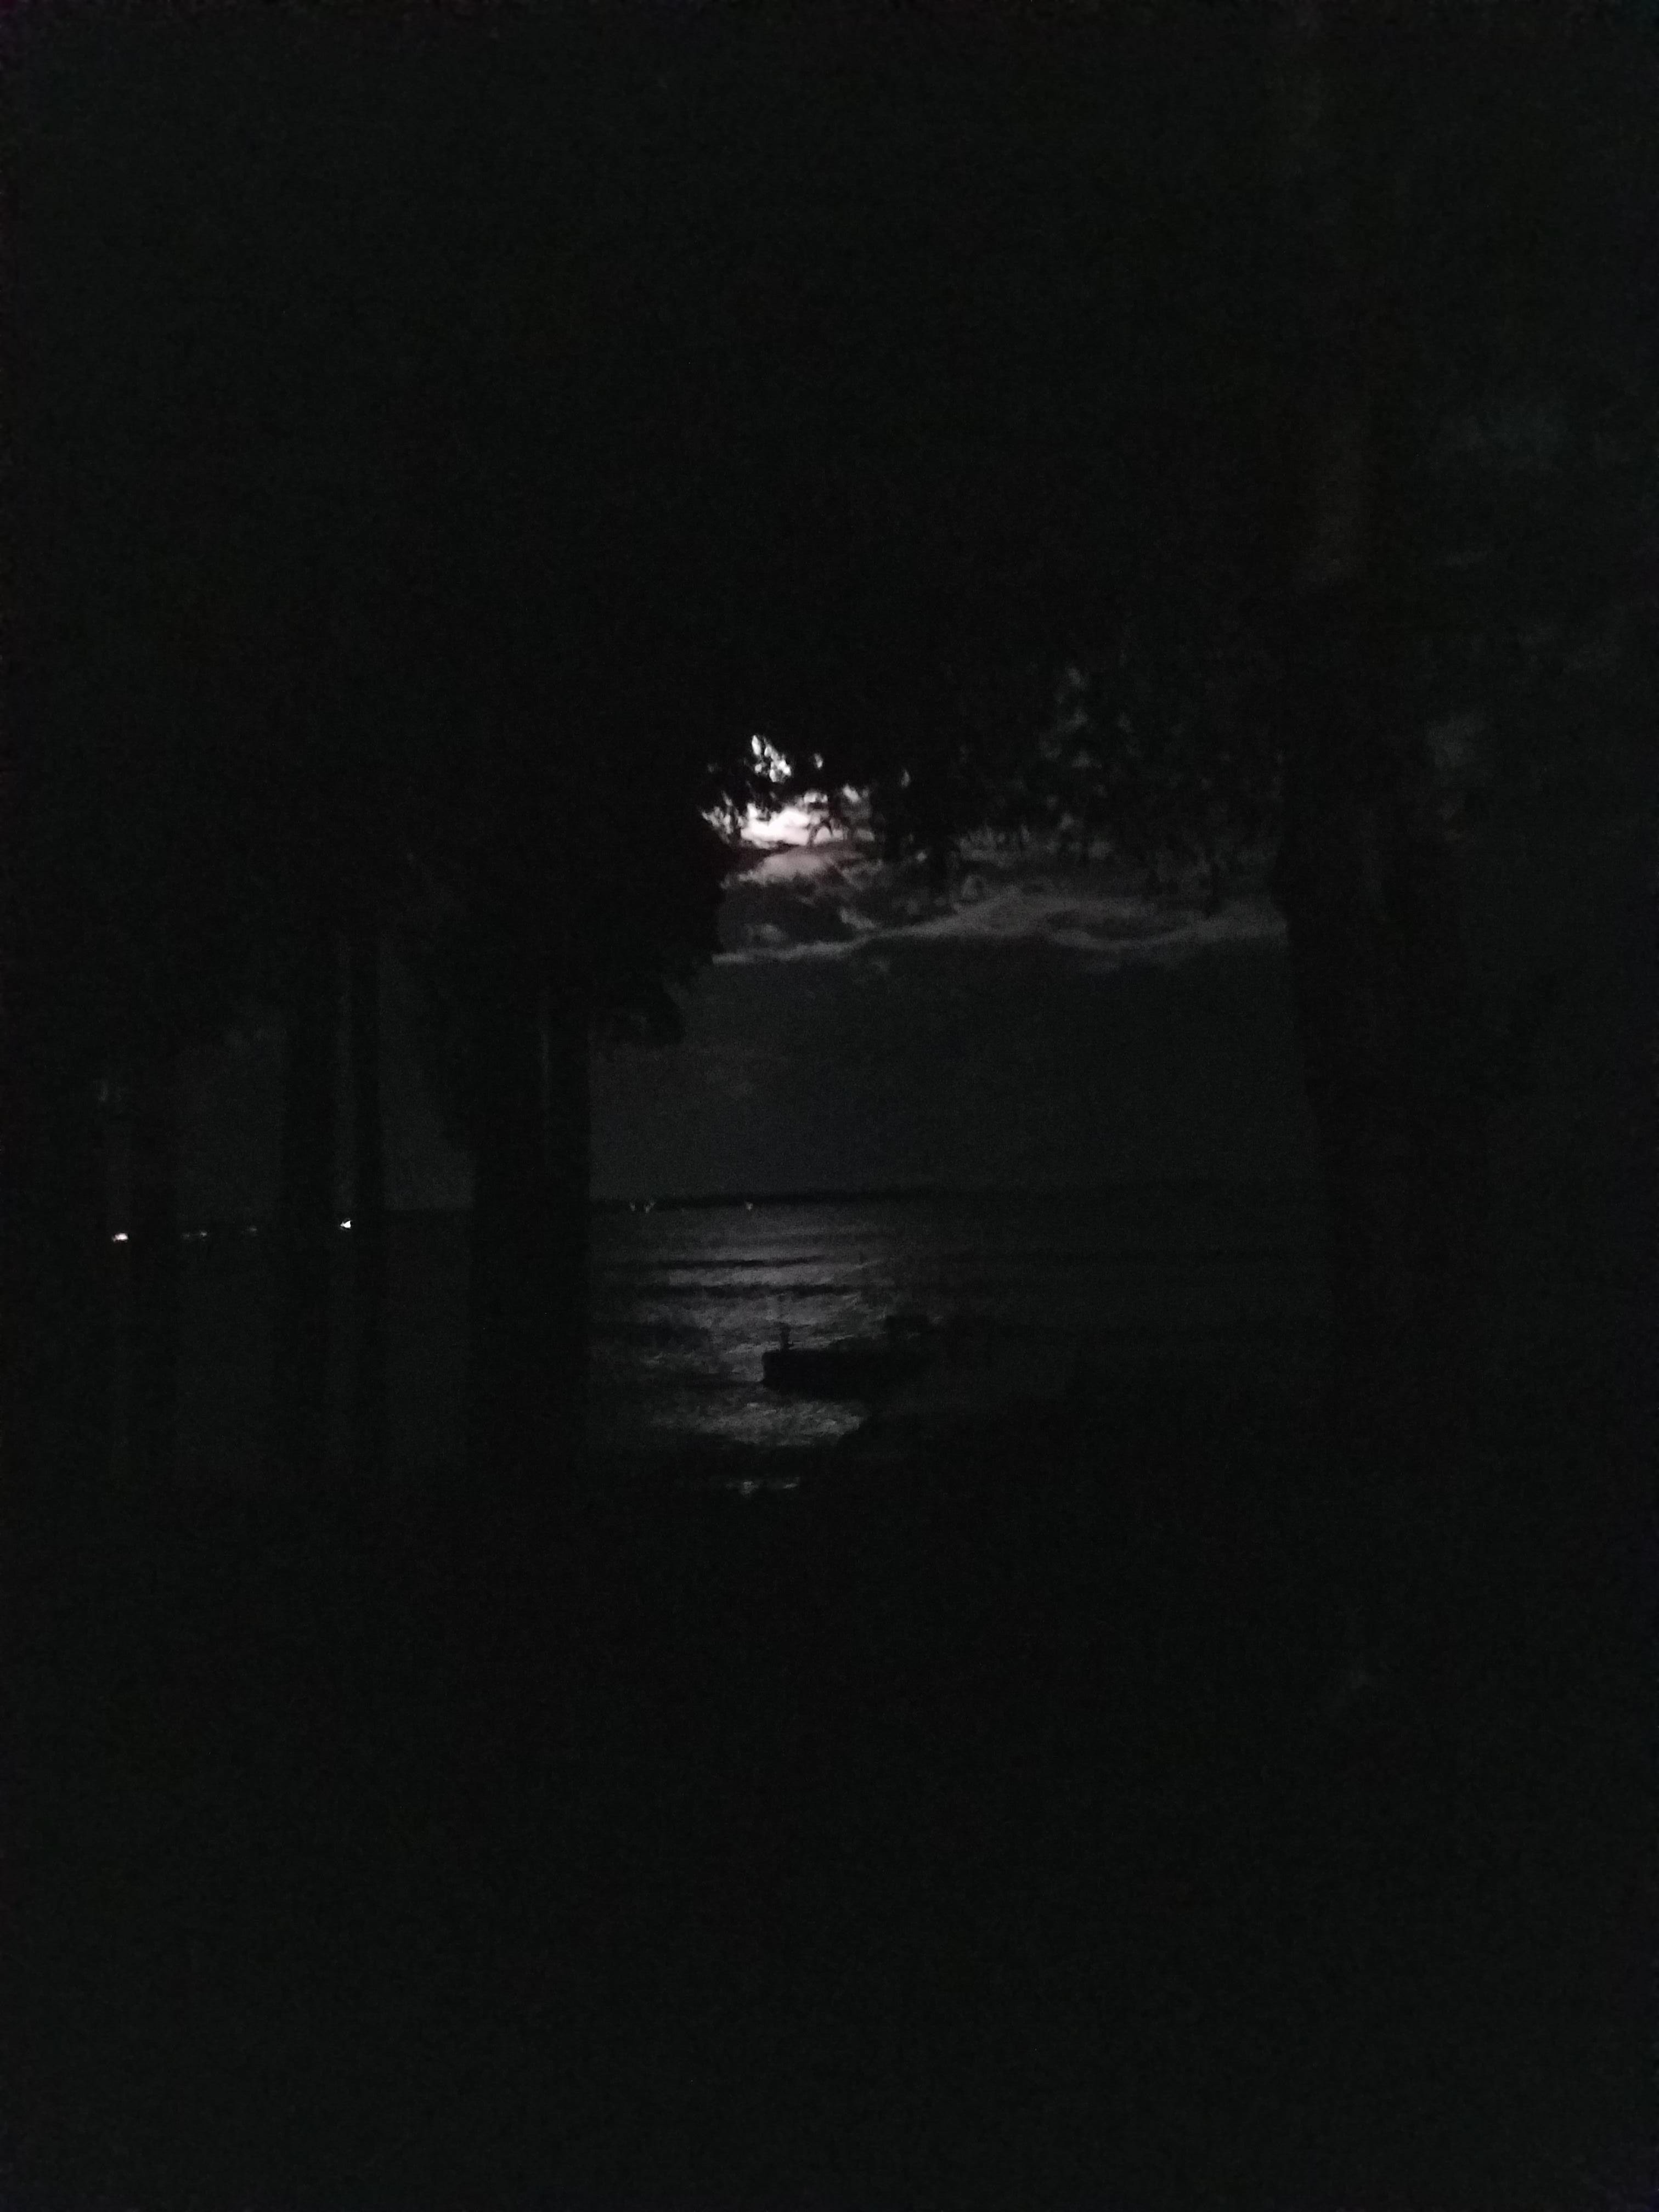 our view at night, listening to the tide